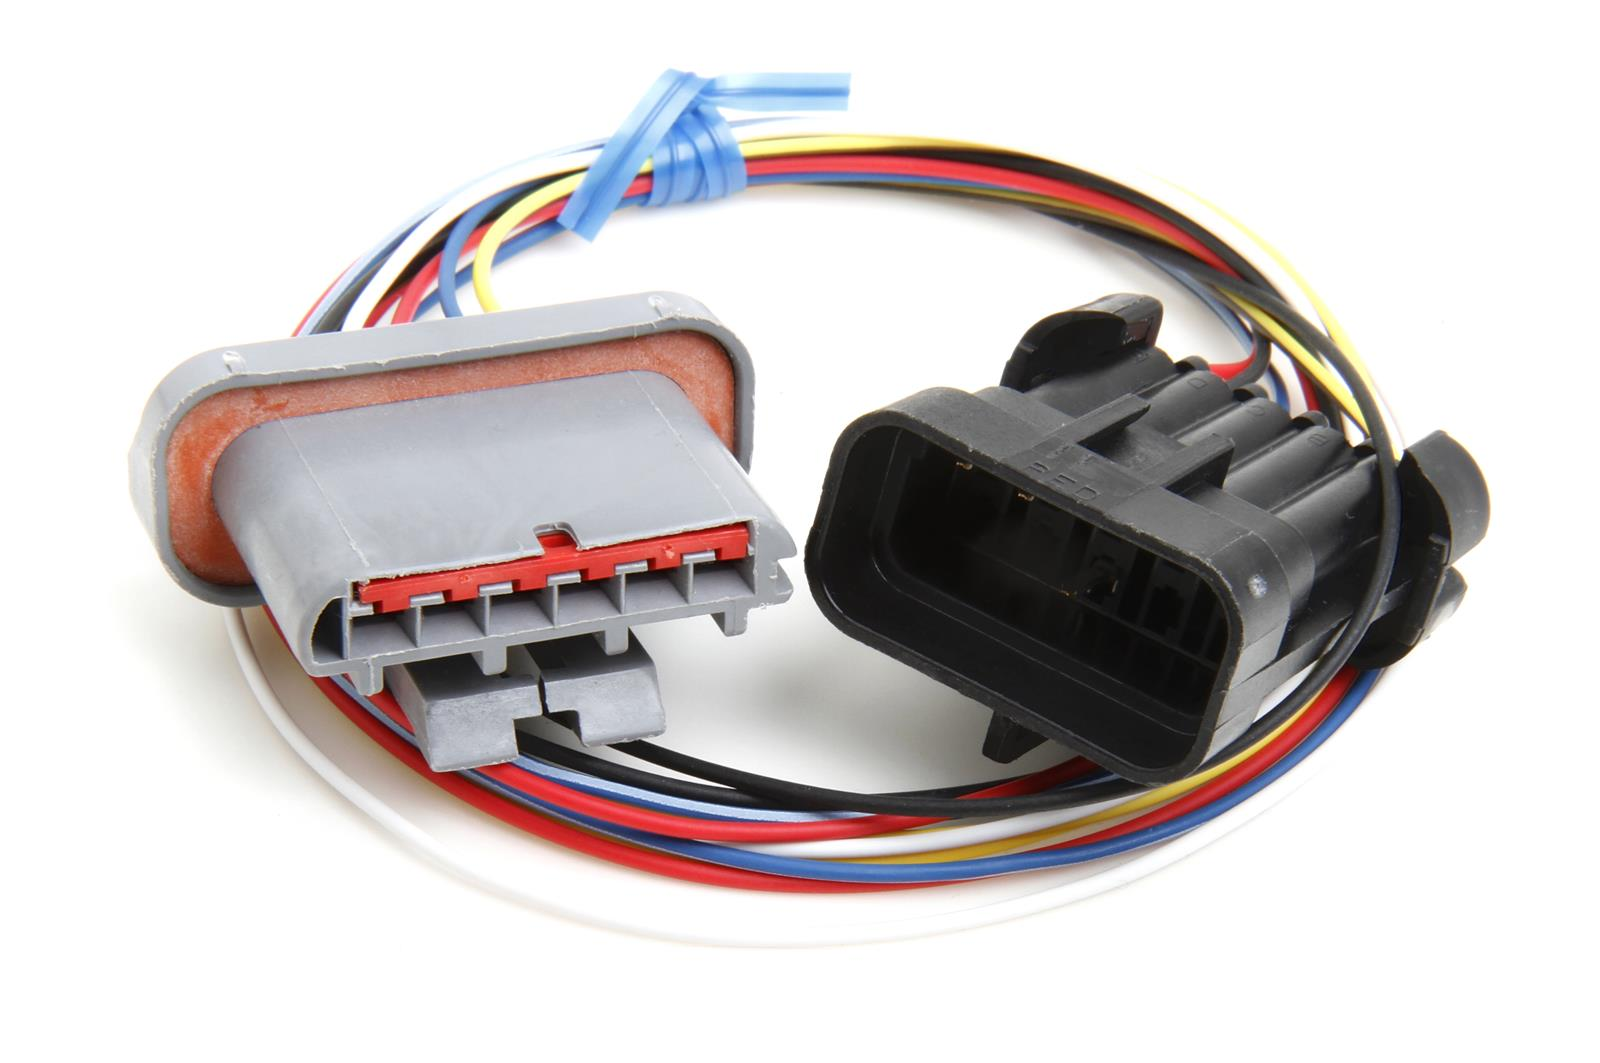 Holley EFI Systems Wiring Harnesses 558-305 - Free Shipping on Orders Over  $49 at Summit Racing